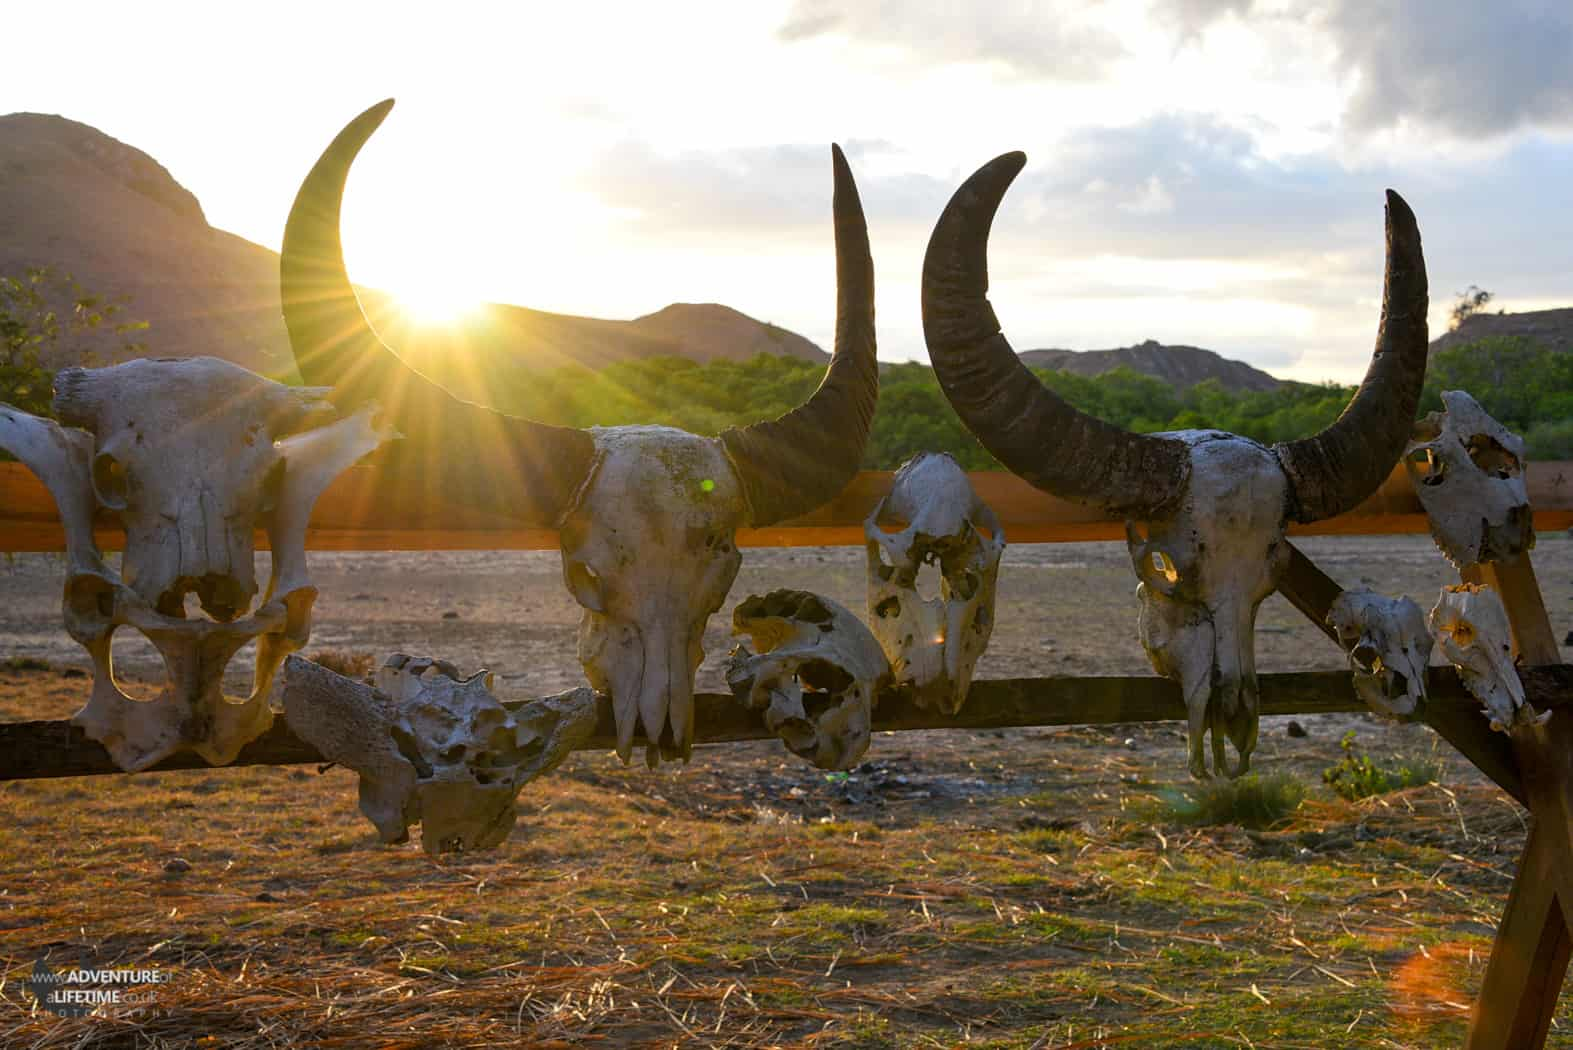 Cattle Skulls on Rinca Island, Flores, Indonesia